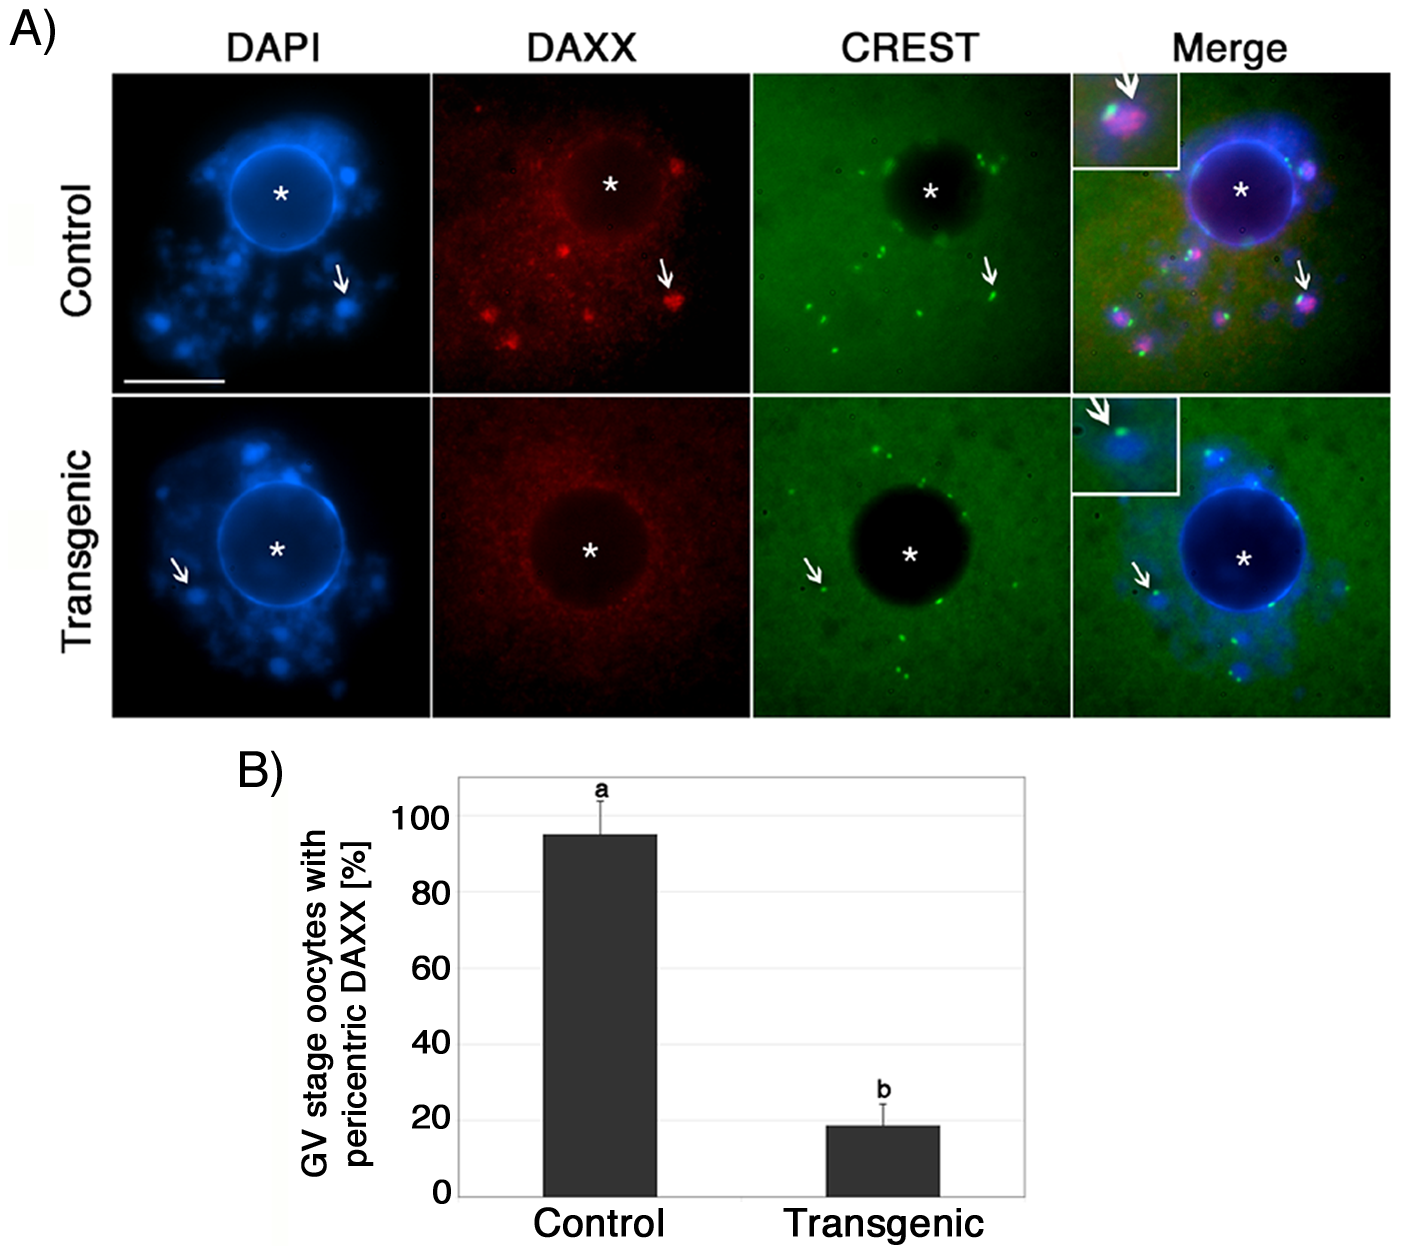 ATRX is required to recruit the transcriptional regulator (DAXX) to pericentric heterochromatin in mammalian oocytes.